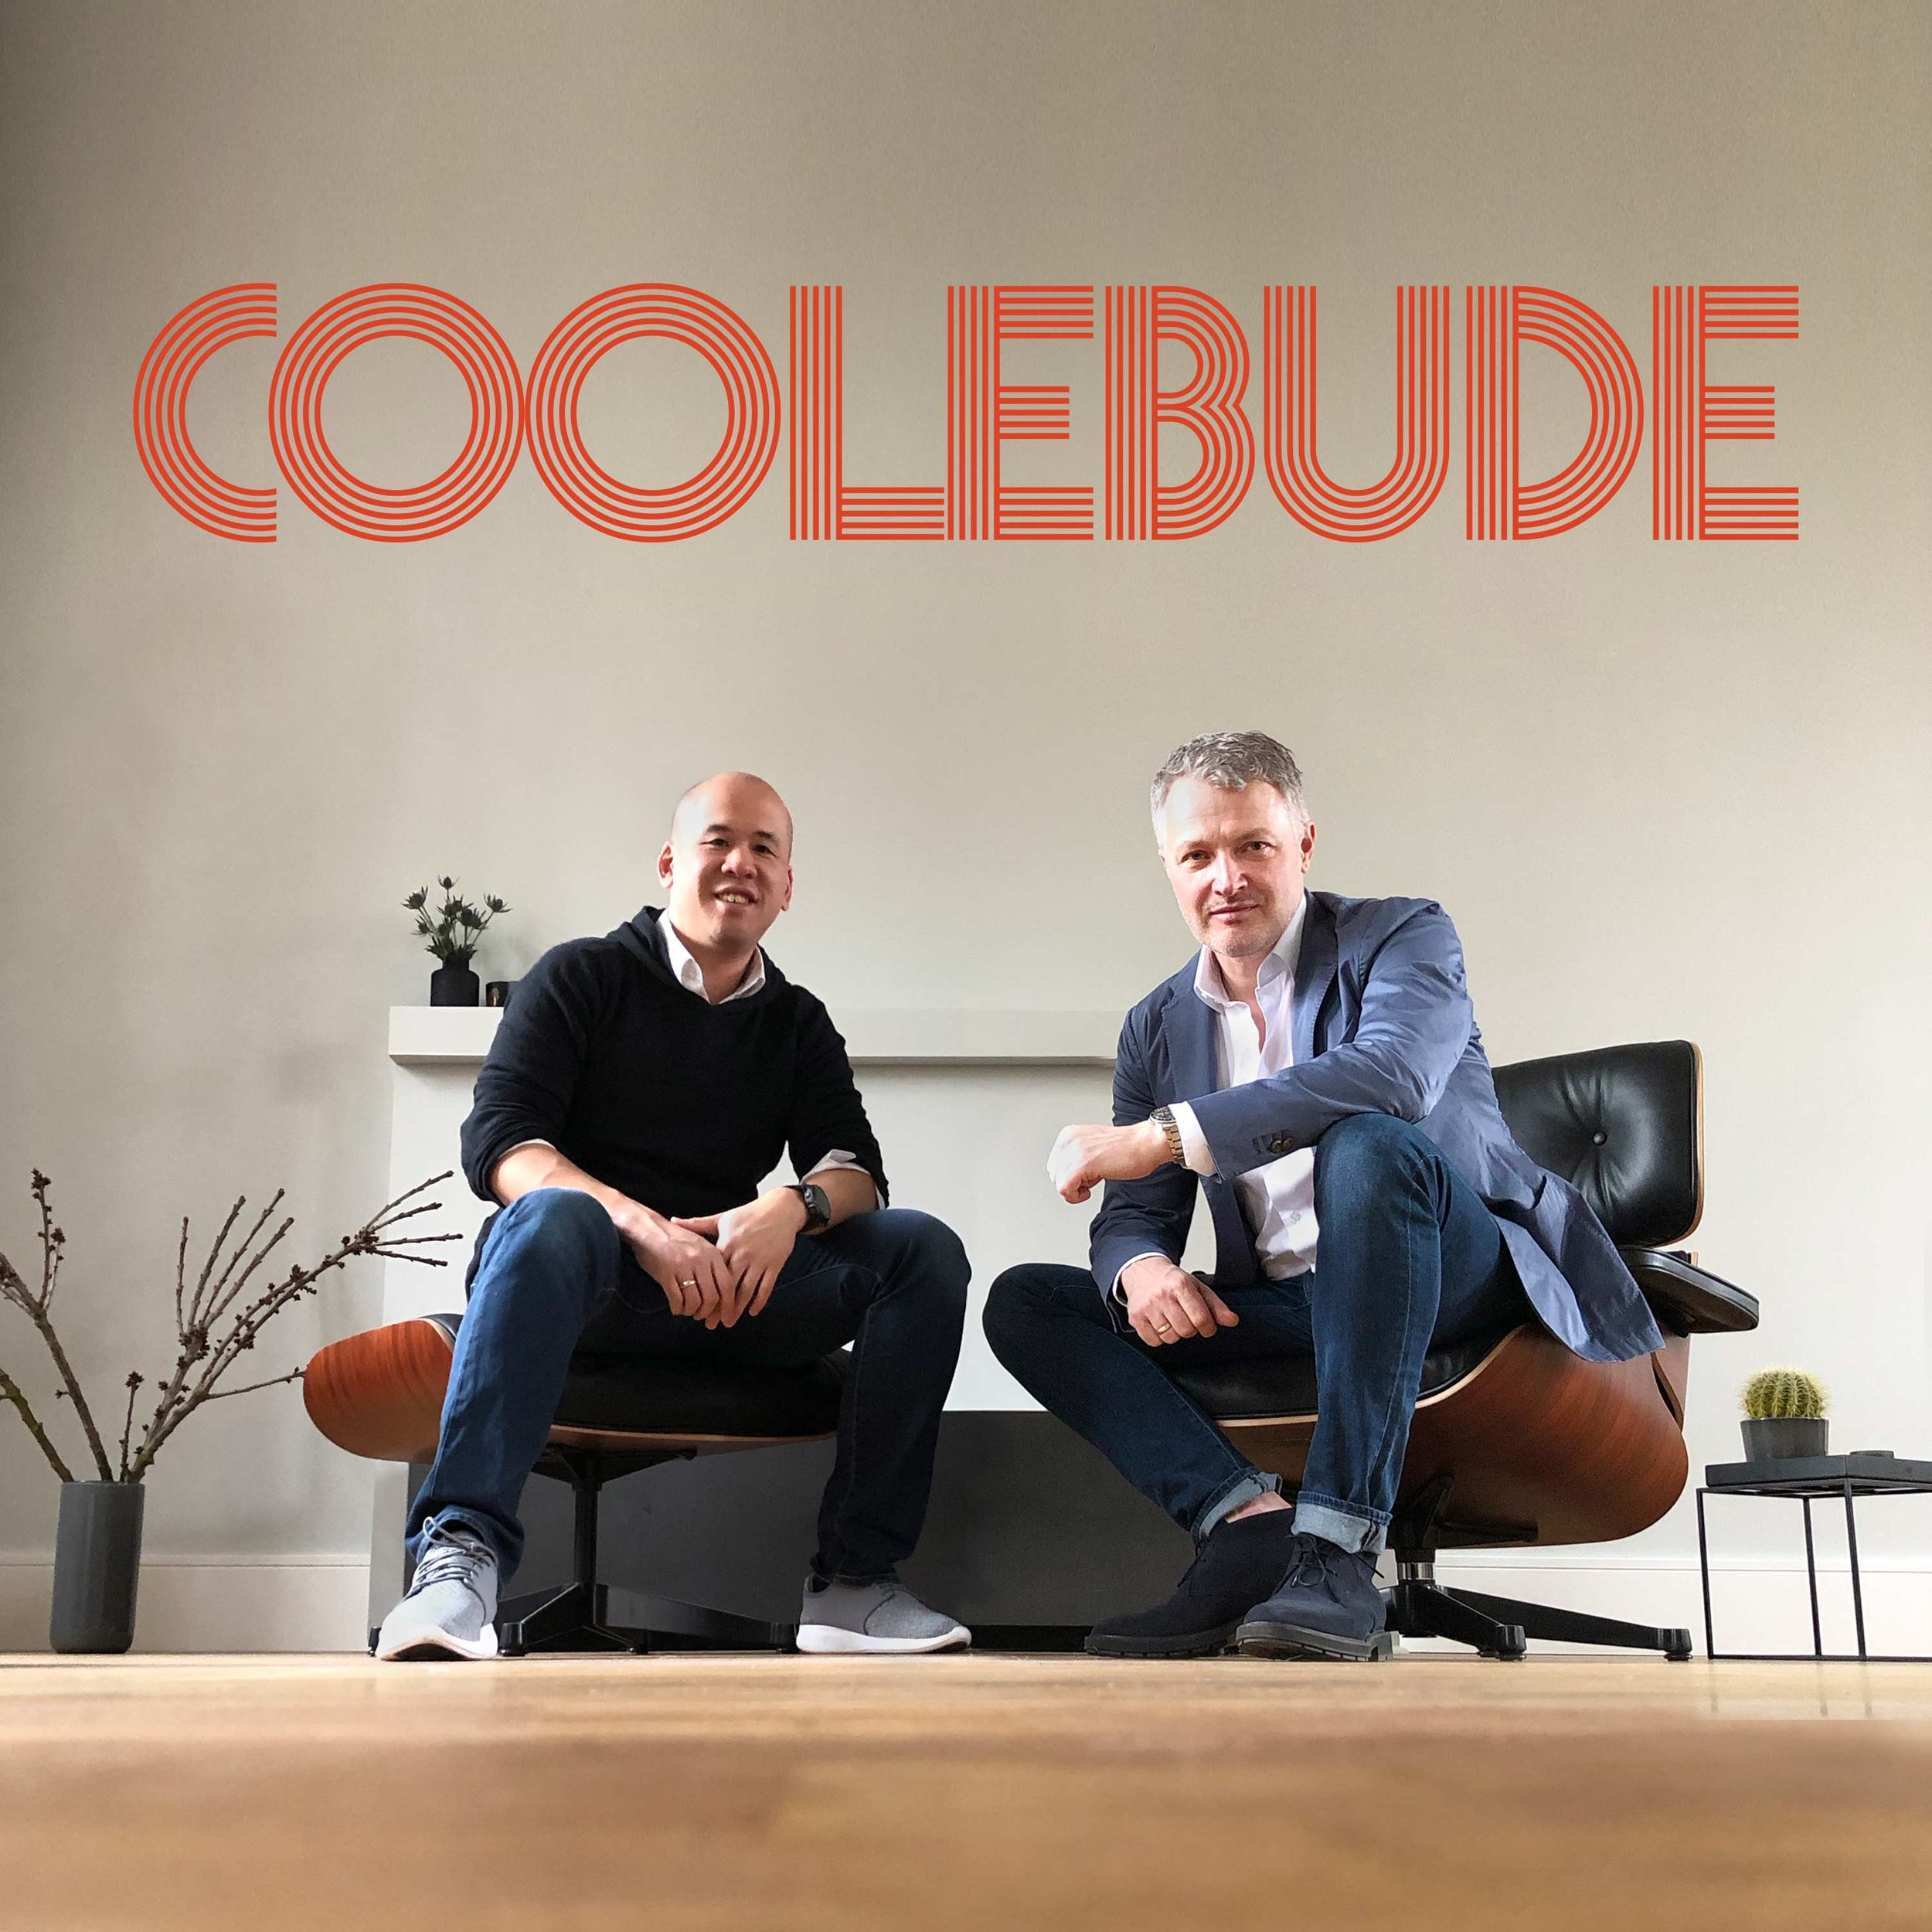 cooleBude_cover_rss.jpg